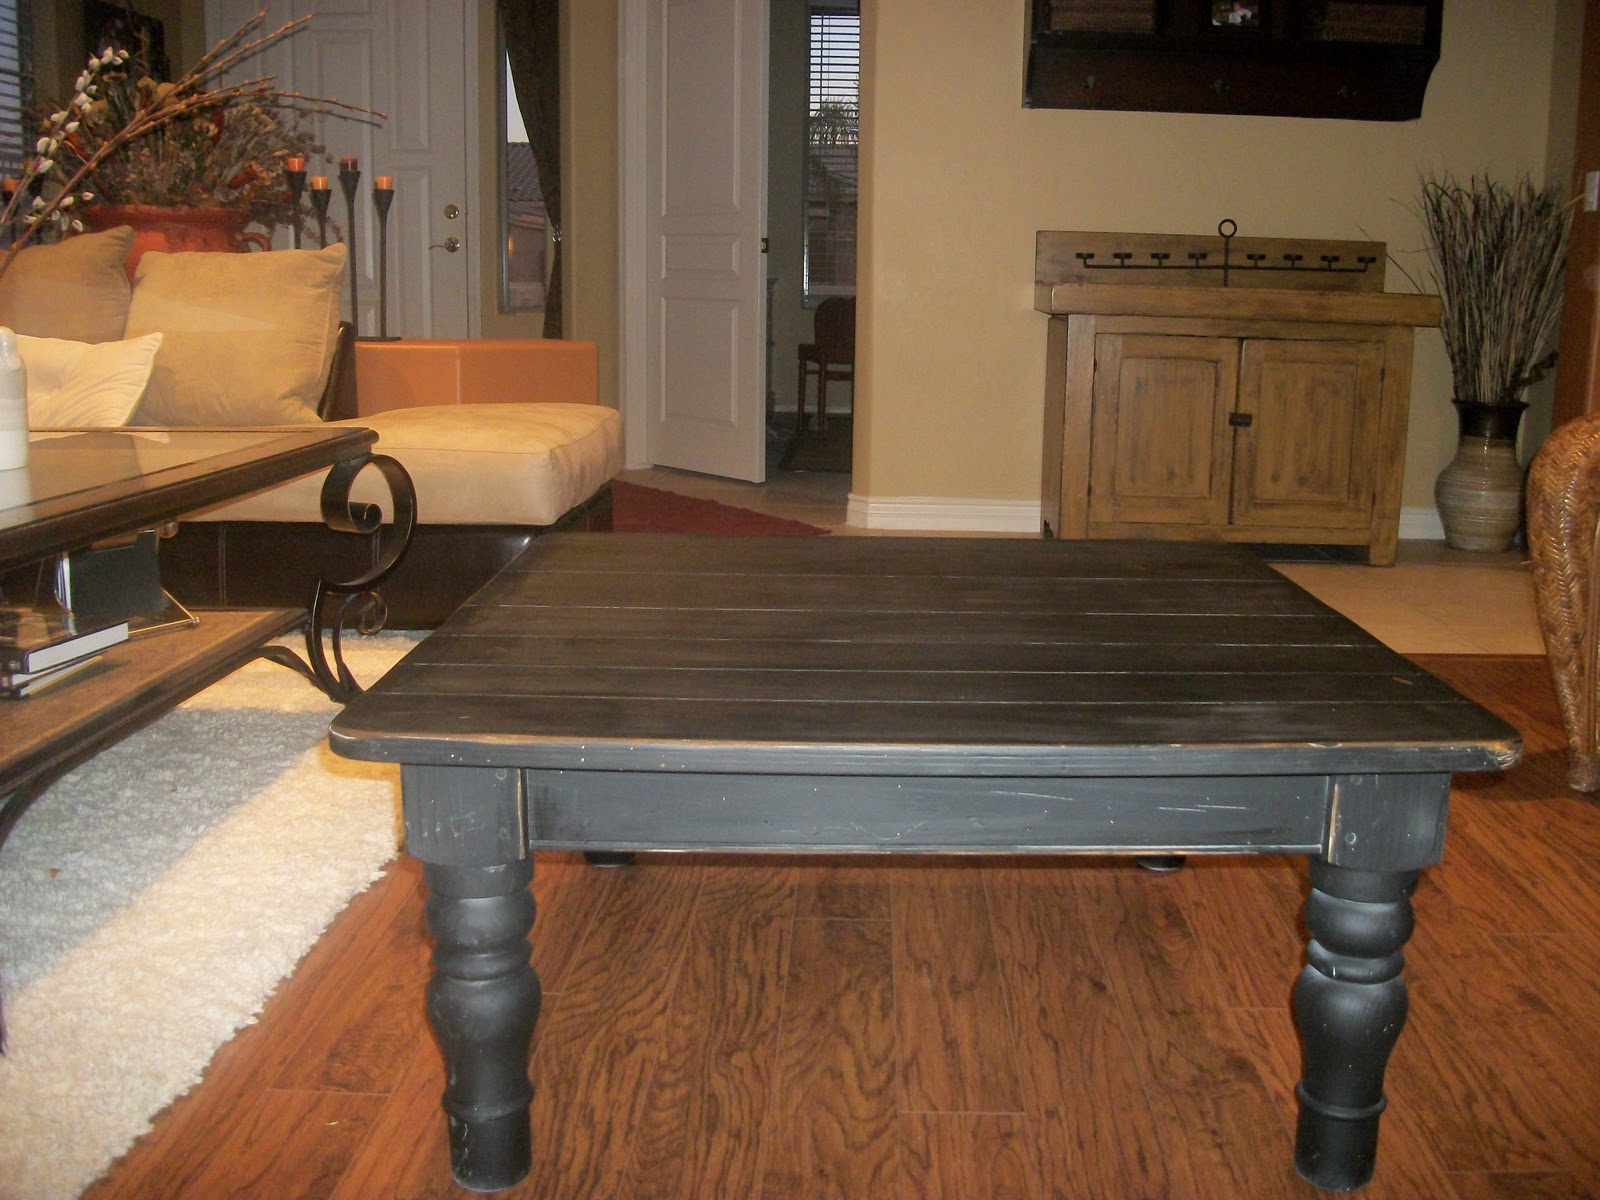 Designer Dropout Ethan Allen Farmhouse Style Coffee Table SOLD